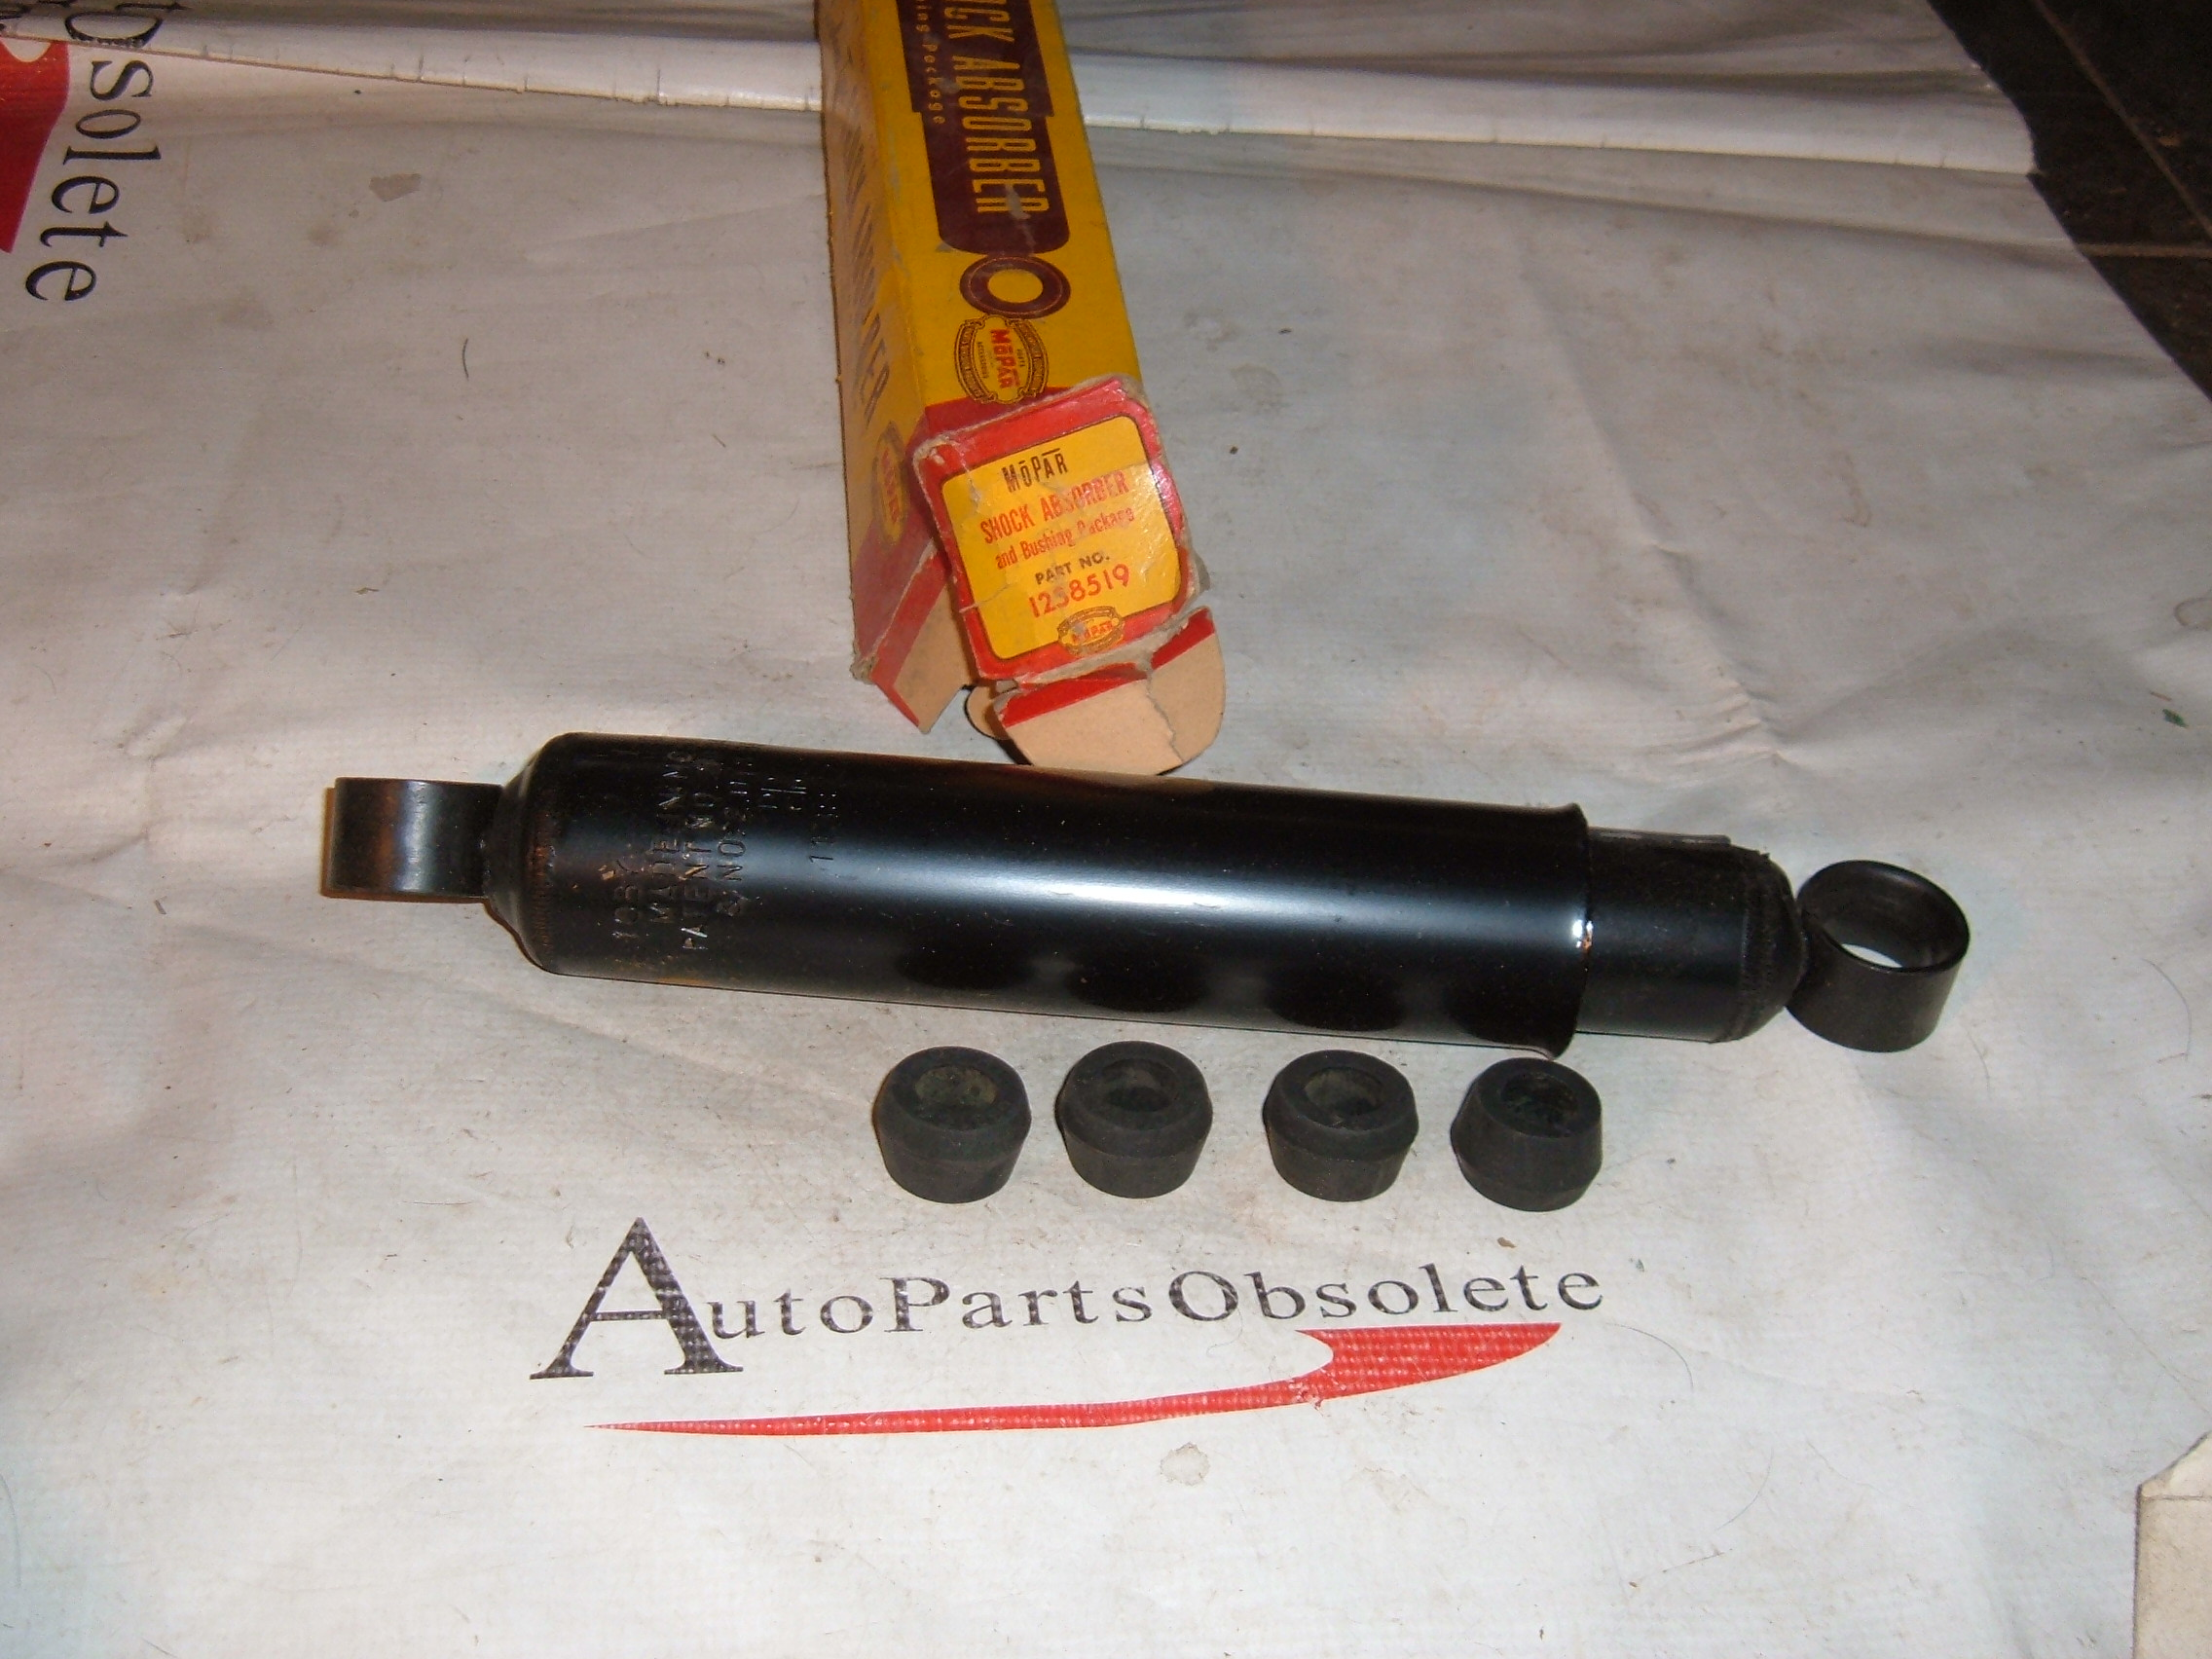 1937 38 plymouth dodge front shock absorber # 1238519 (z 1238519)